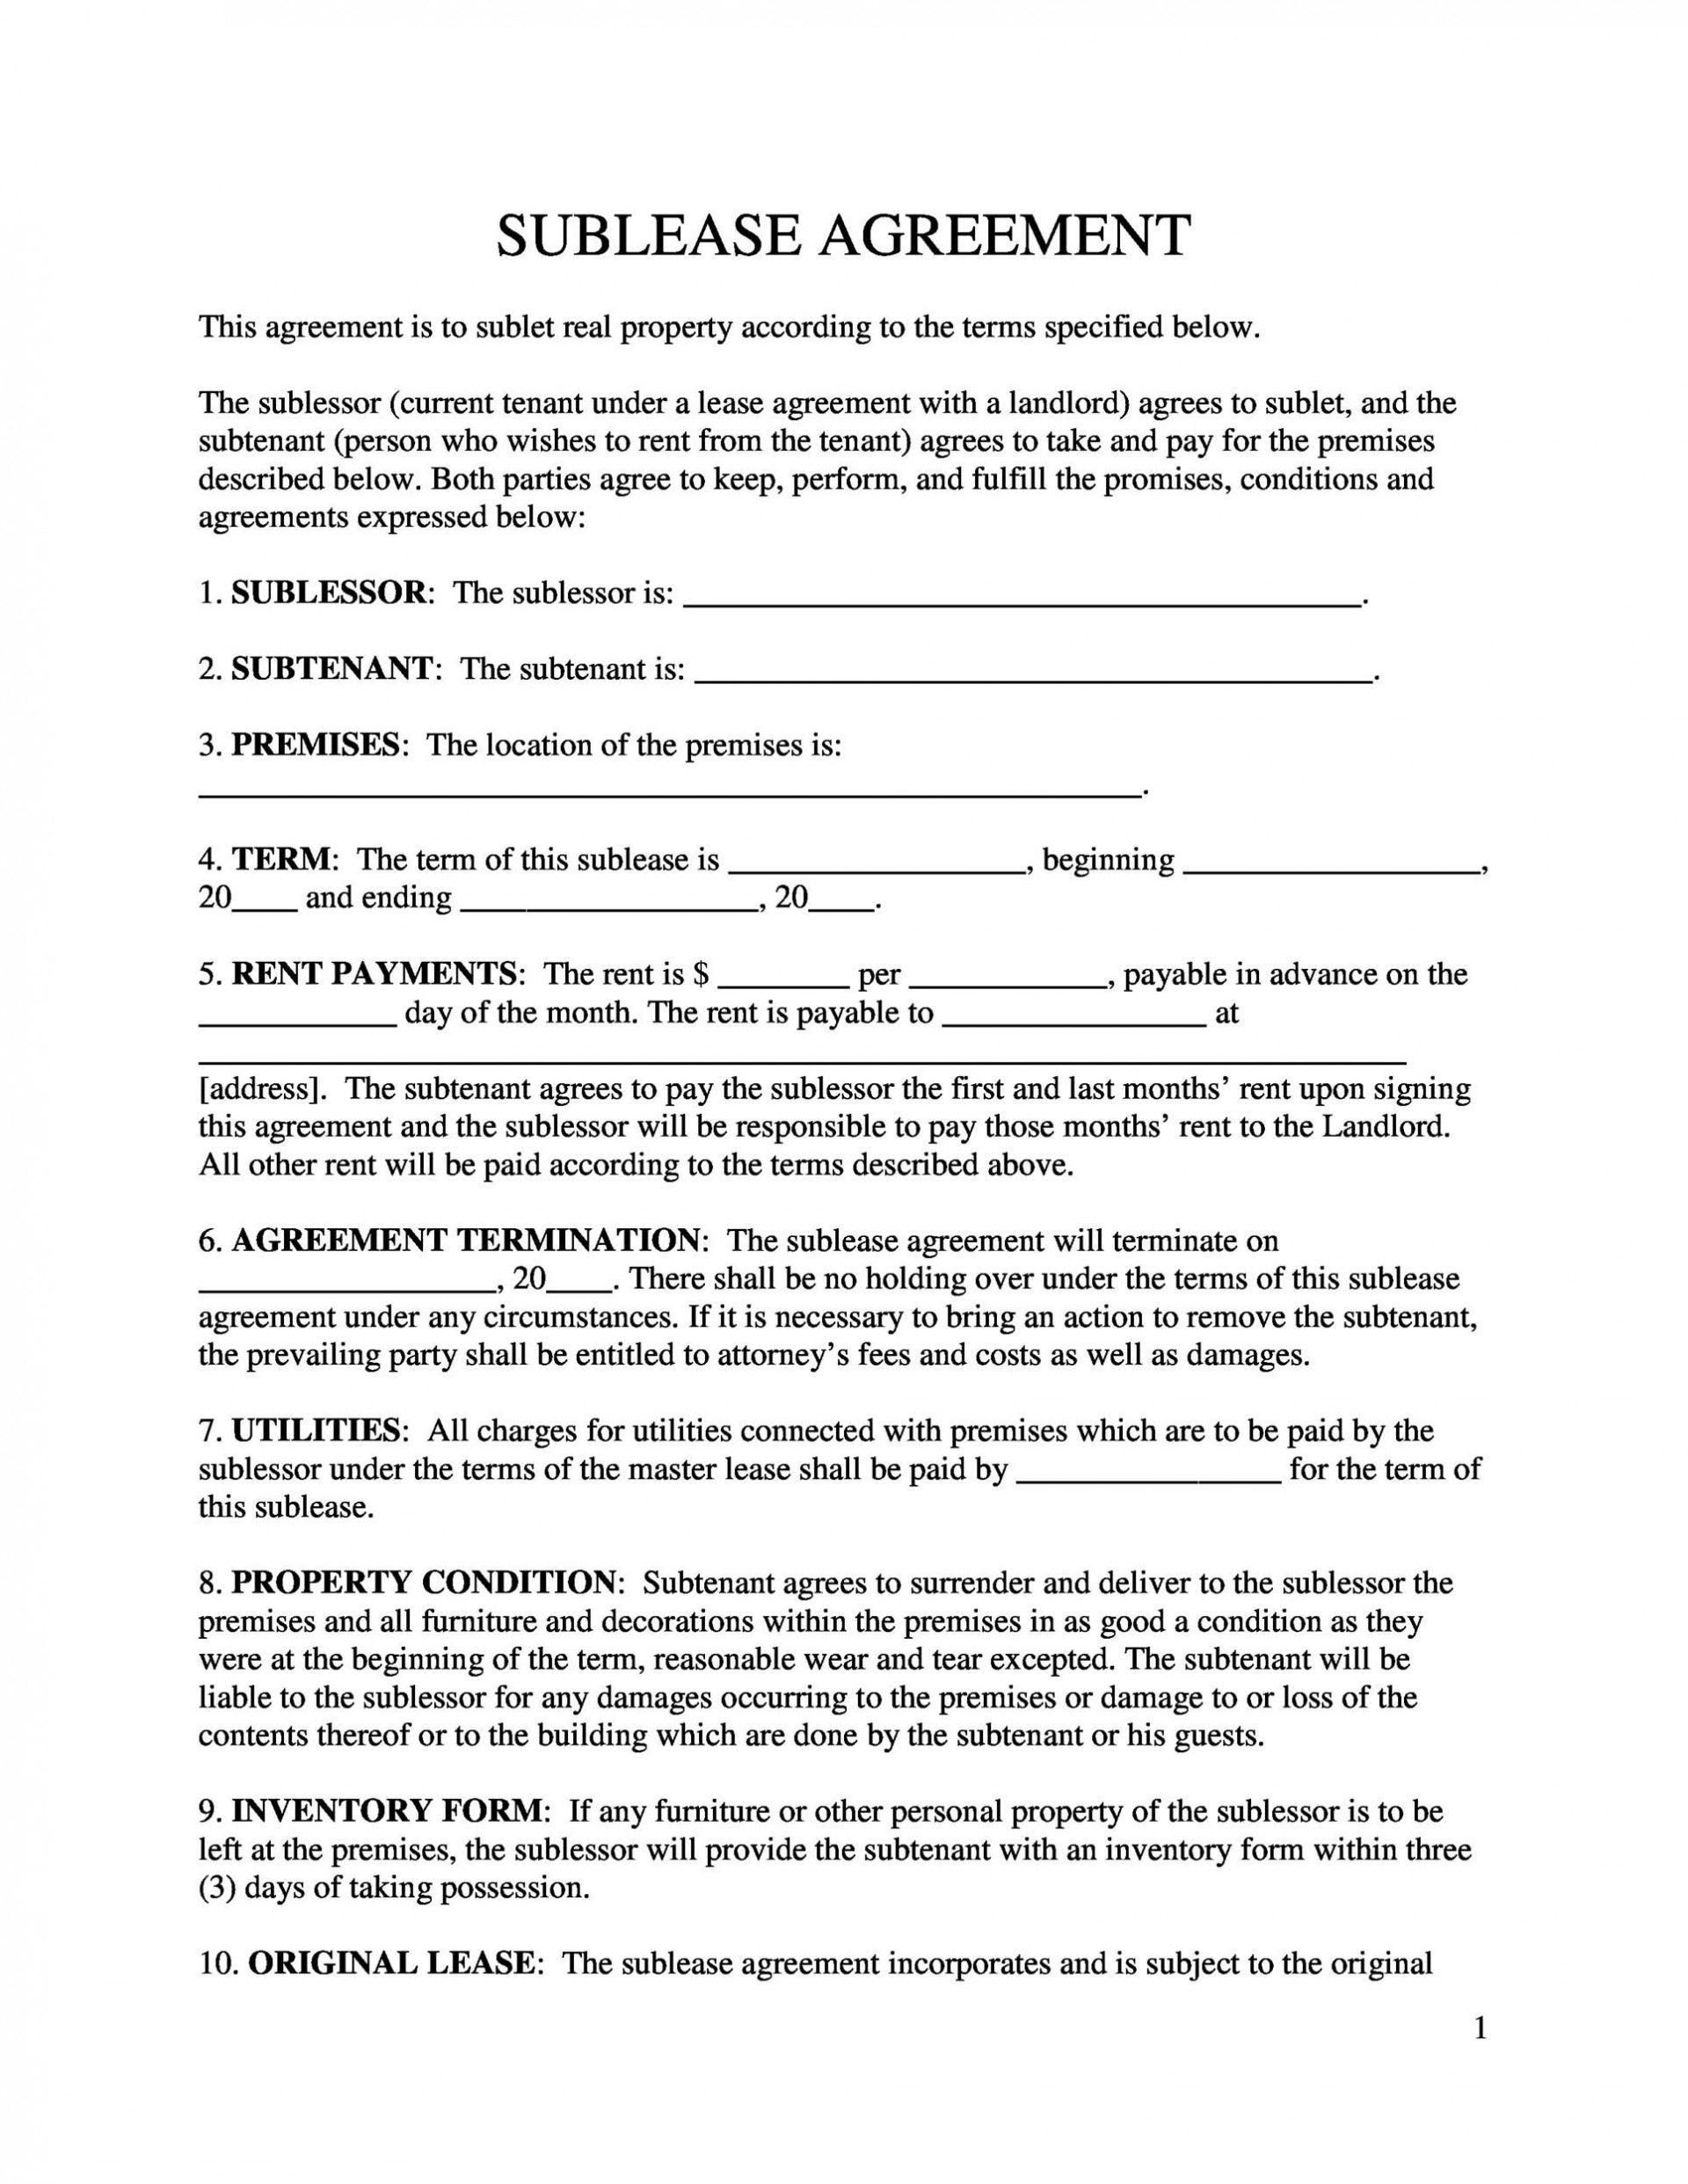 009 Fascinating Free Sublease Agreement Template South Africa High Resolution  Simple Residential Lease Word Download1920